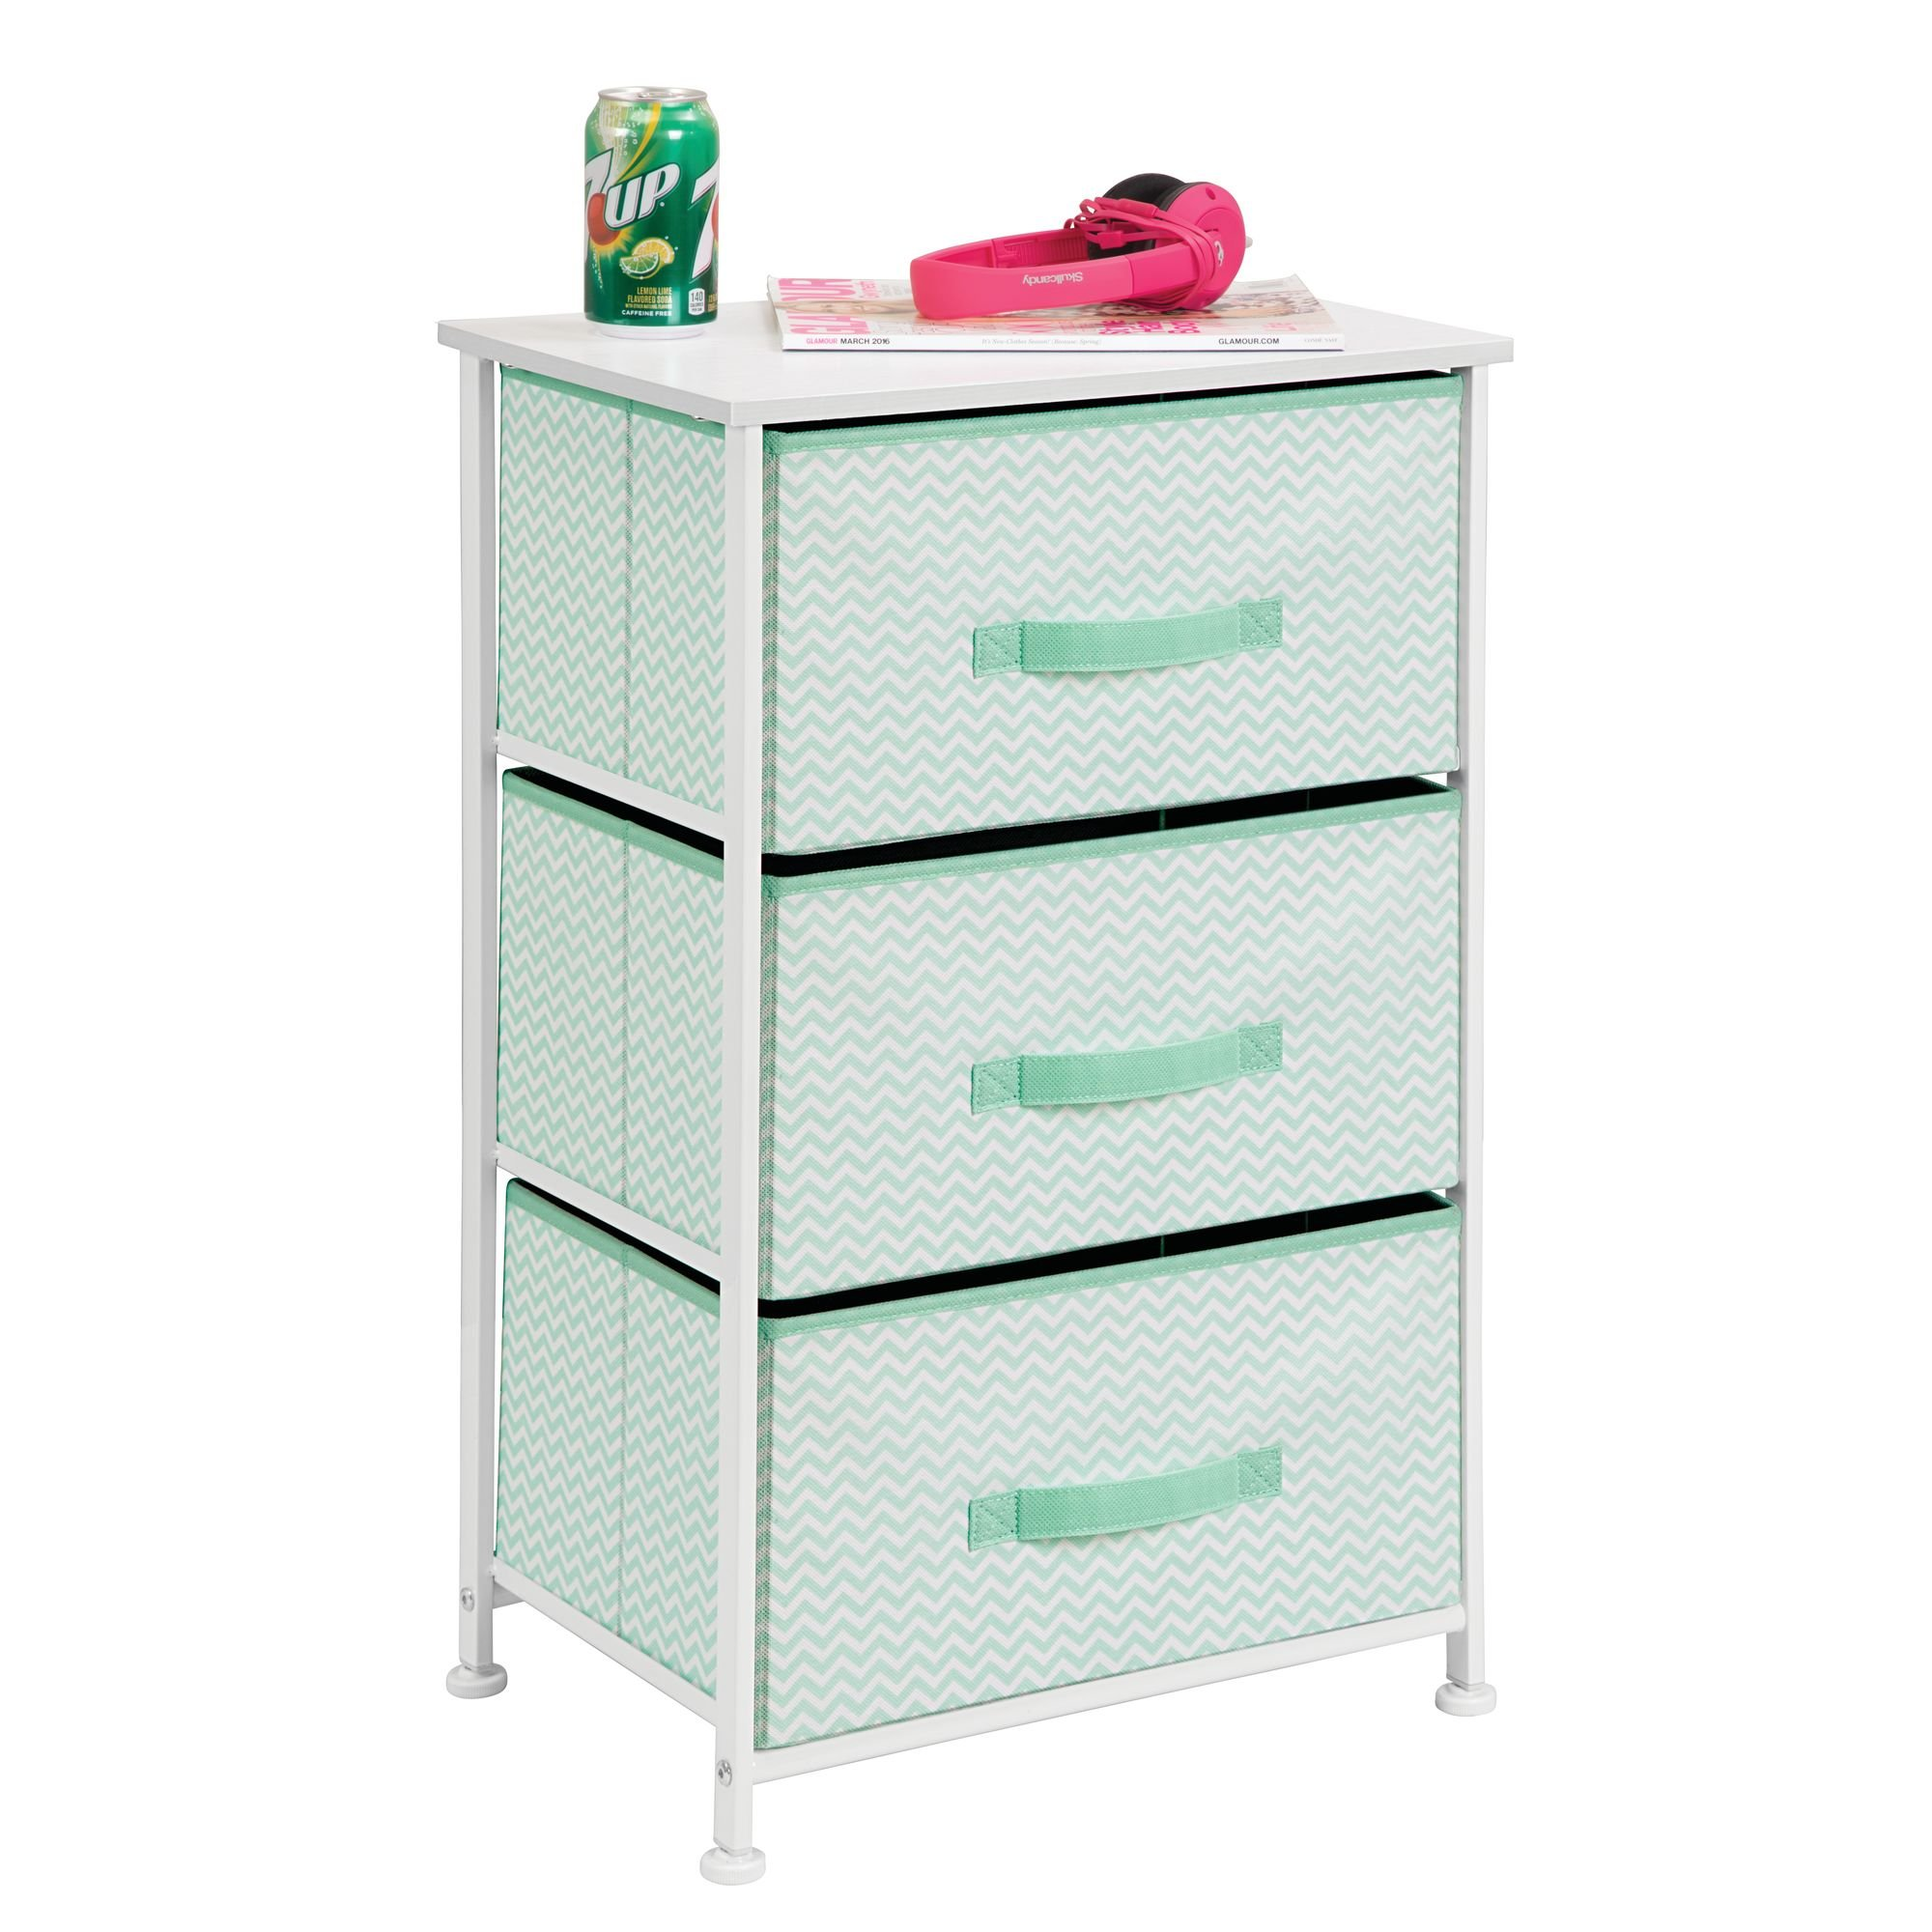 mDesign Vertical Dresser Storage Tower - Sturdy Steel Frame, Wood Top, Easy Pull Fabric Bins - Organizer Unit for Bedroom, Hallway, Entryway, Closets - Chevron Print - 3 Drawers, Mint/White by mDesign (Image #4)